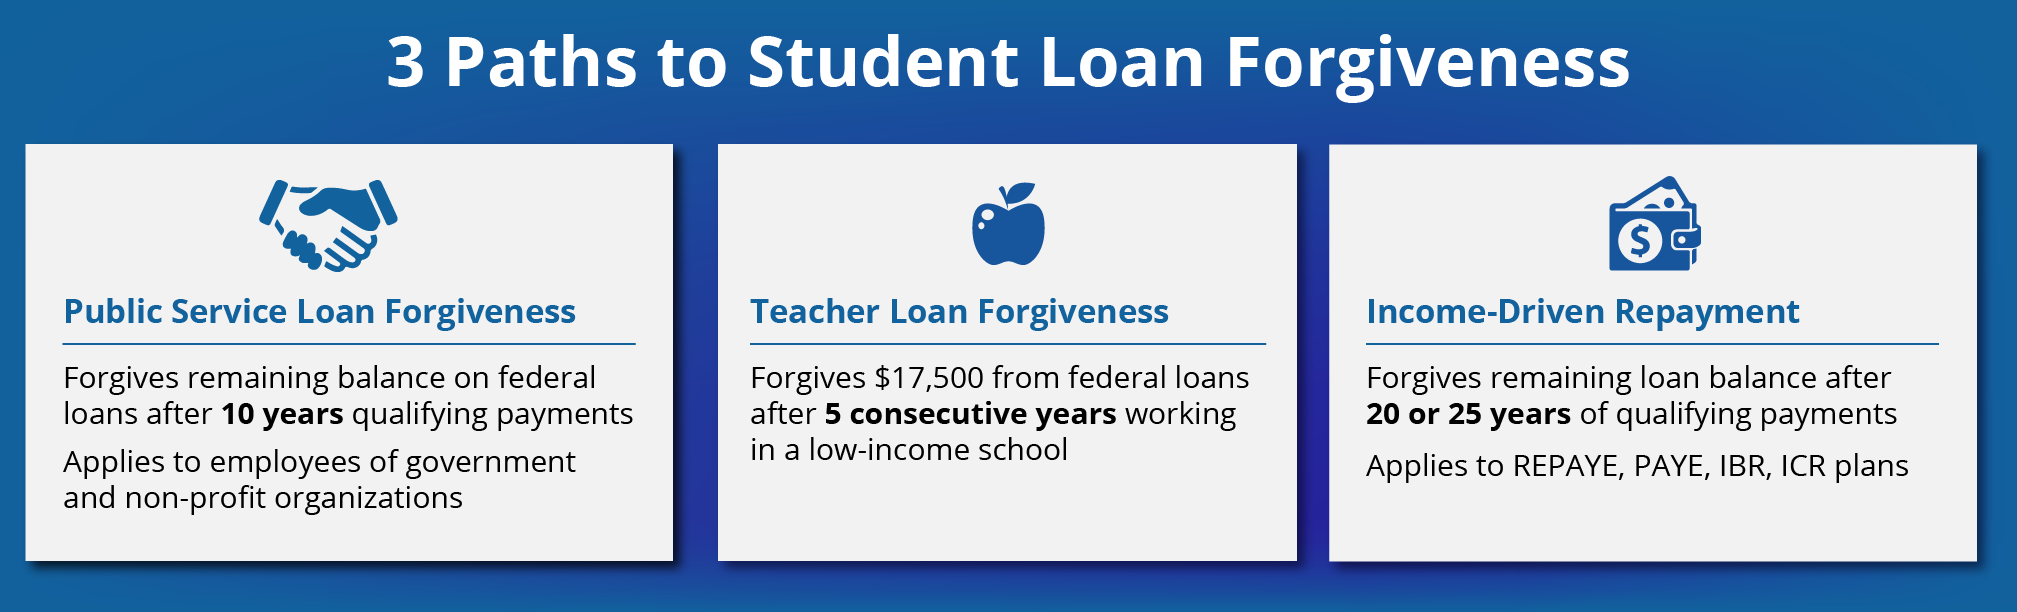 How To Qualify For Student Loan Forgiveness Cancellation Or Discharge